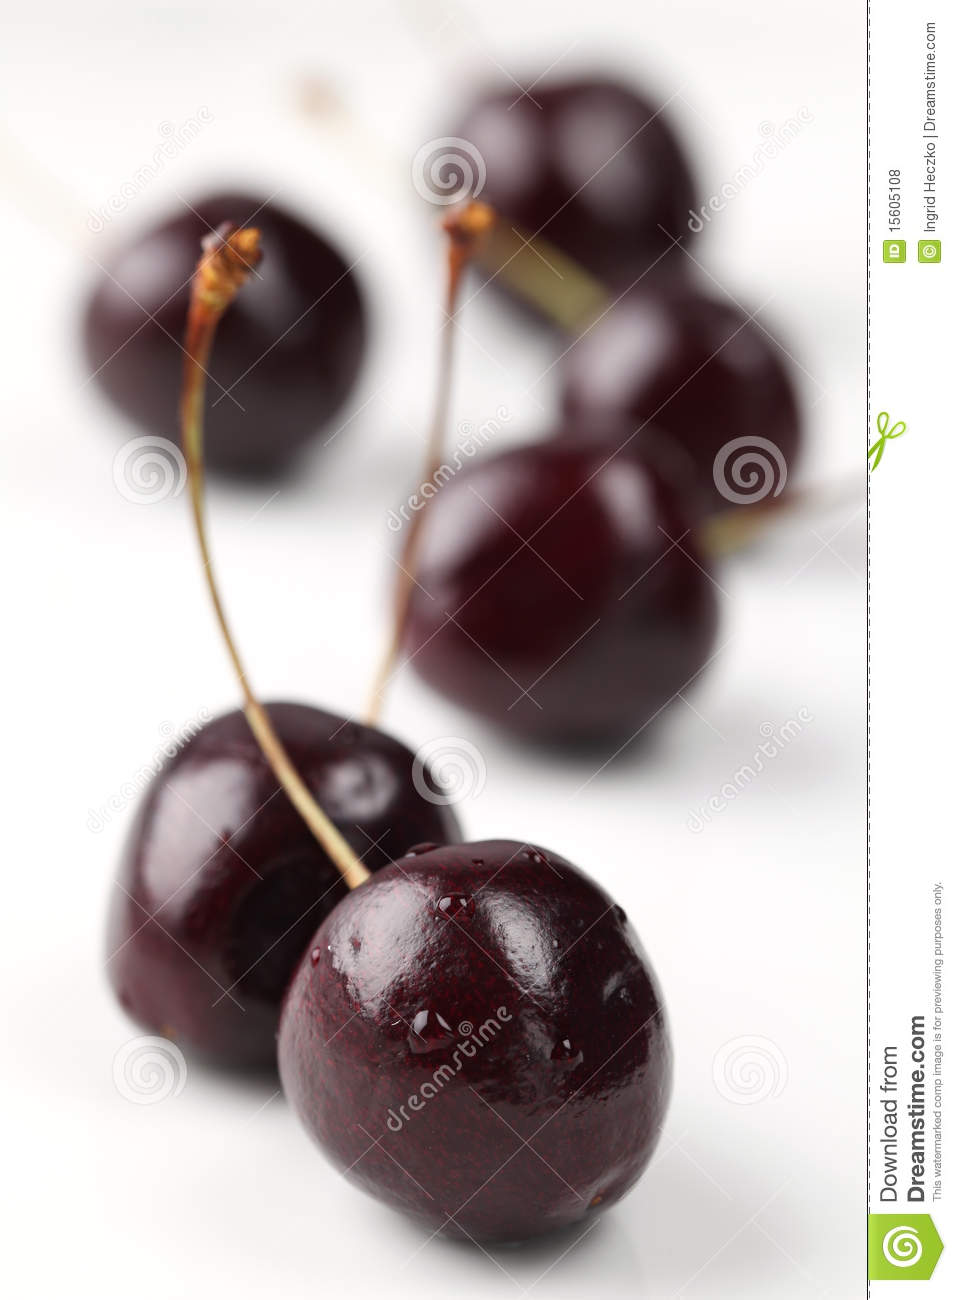 Black Cherries Royalty Free Stock Photos - Image: 15605108